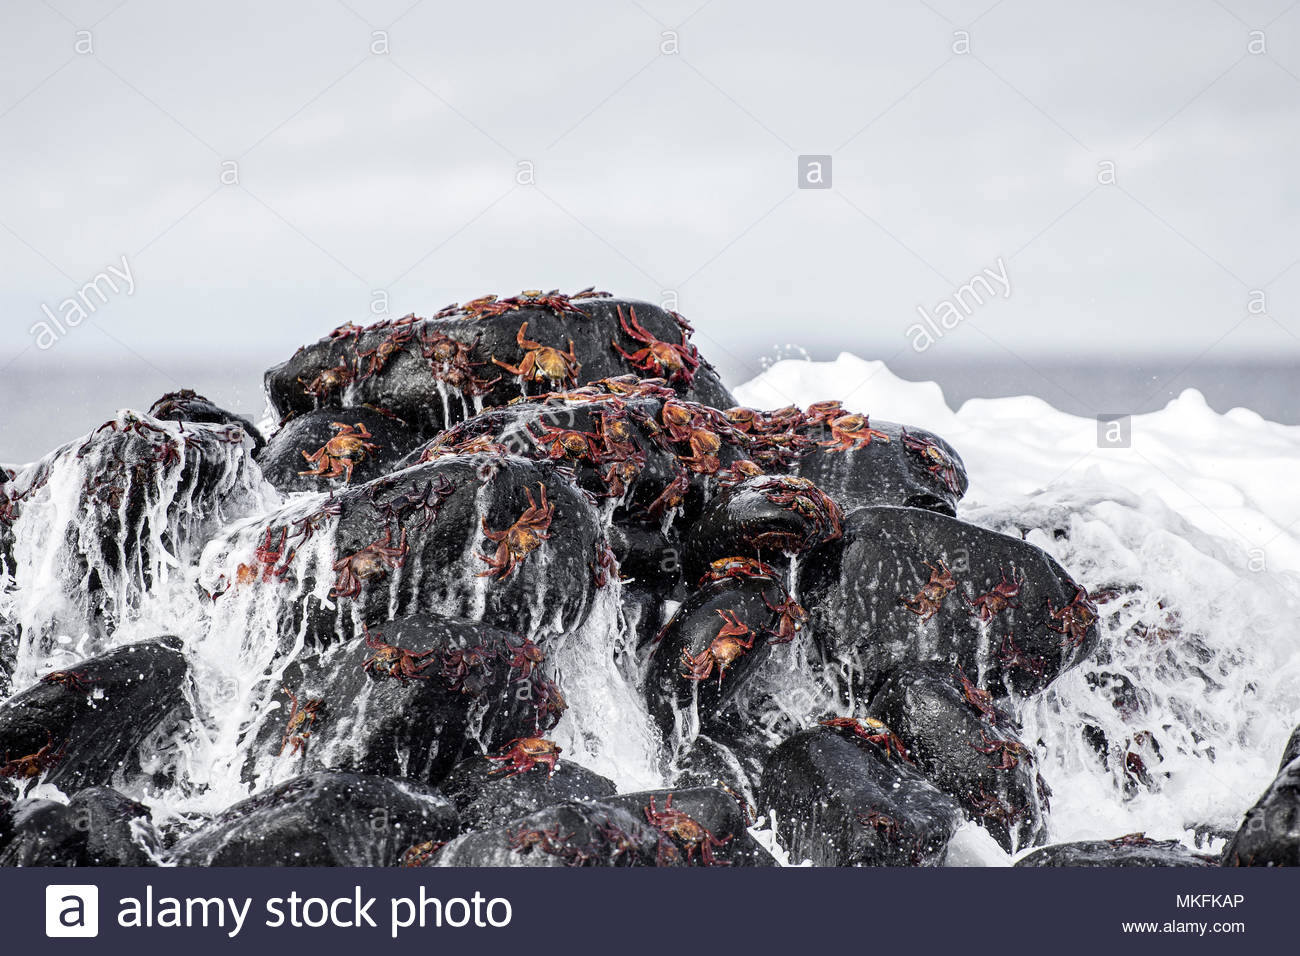 Sally Lightfoot Crabs (Grapsus grapsus) on rocks, Galapagos Islands - Stock Image